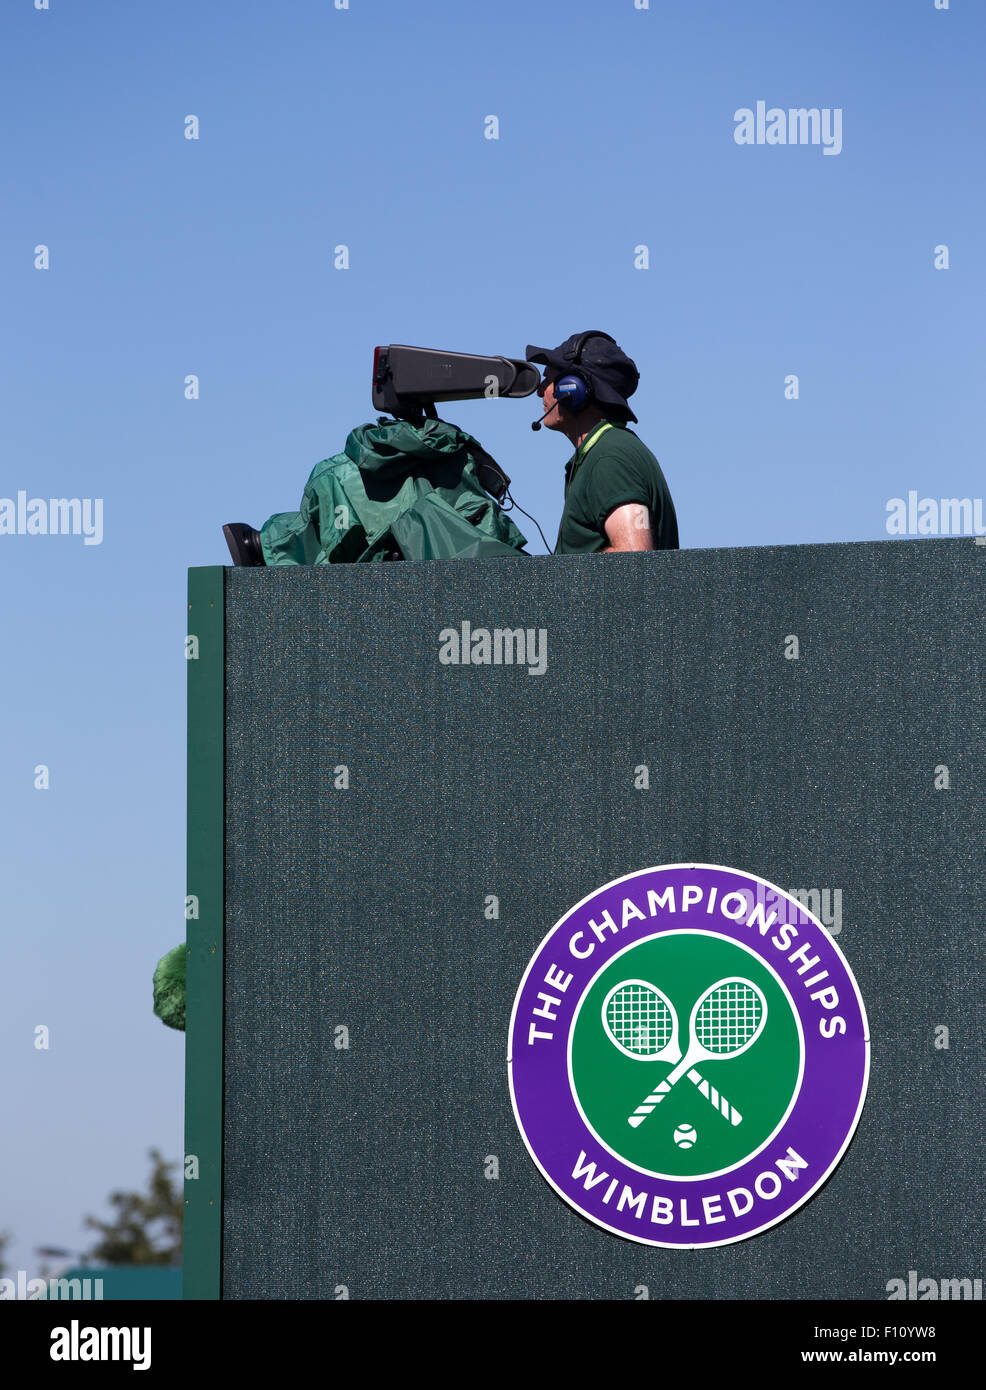 TV camera man at the Wimbledon Championship - Stock Image